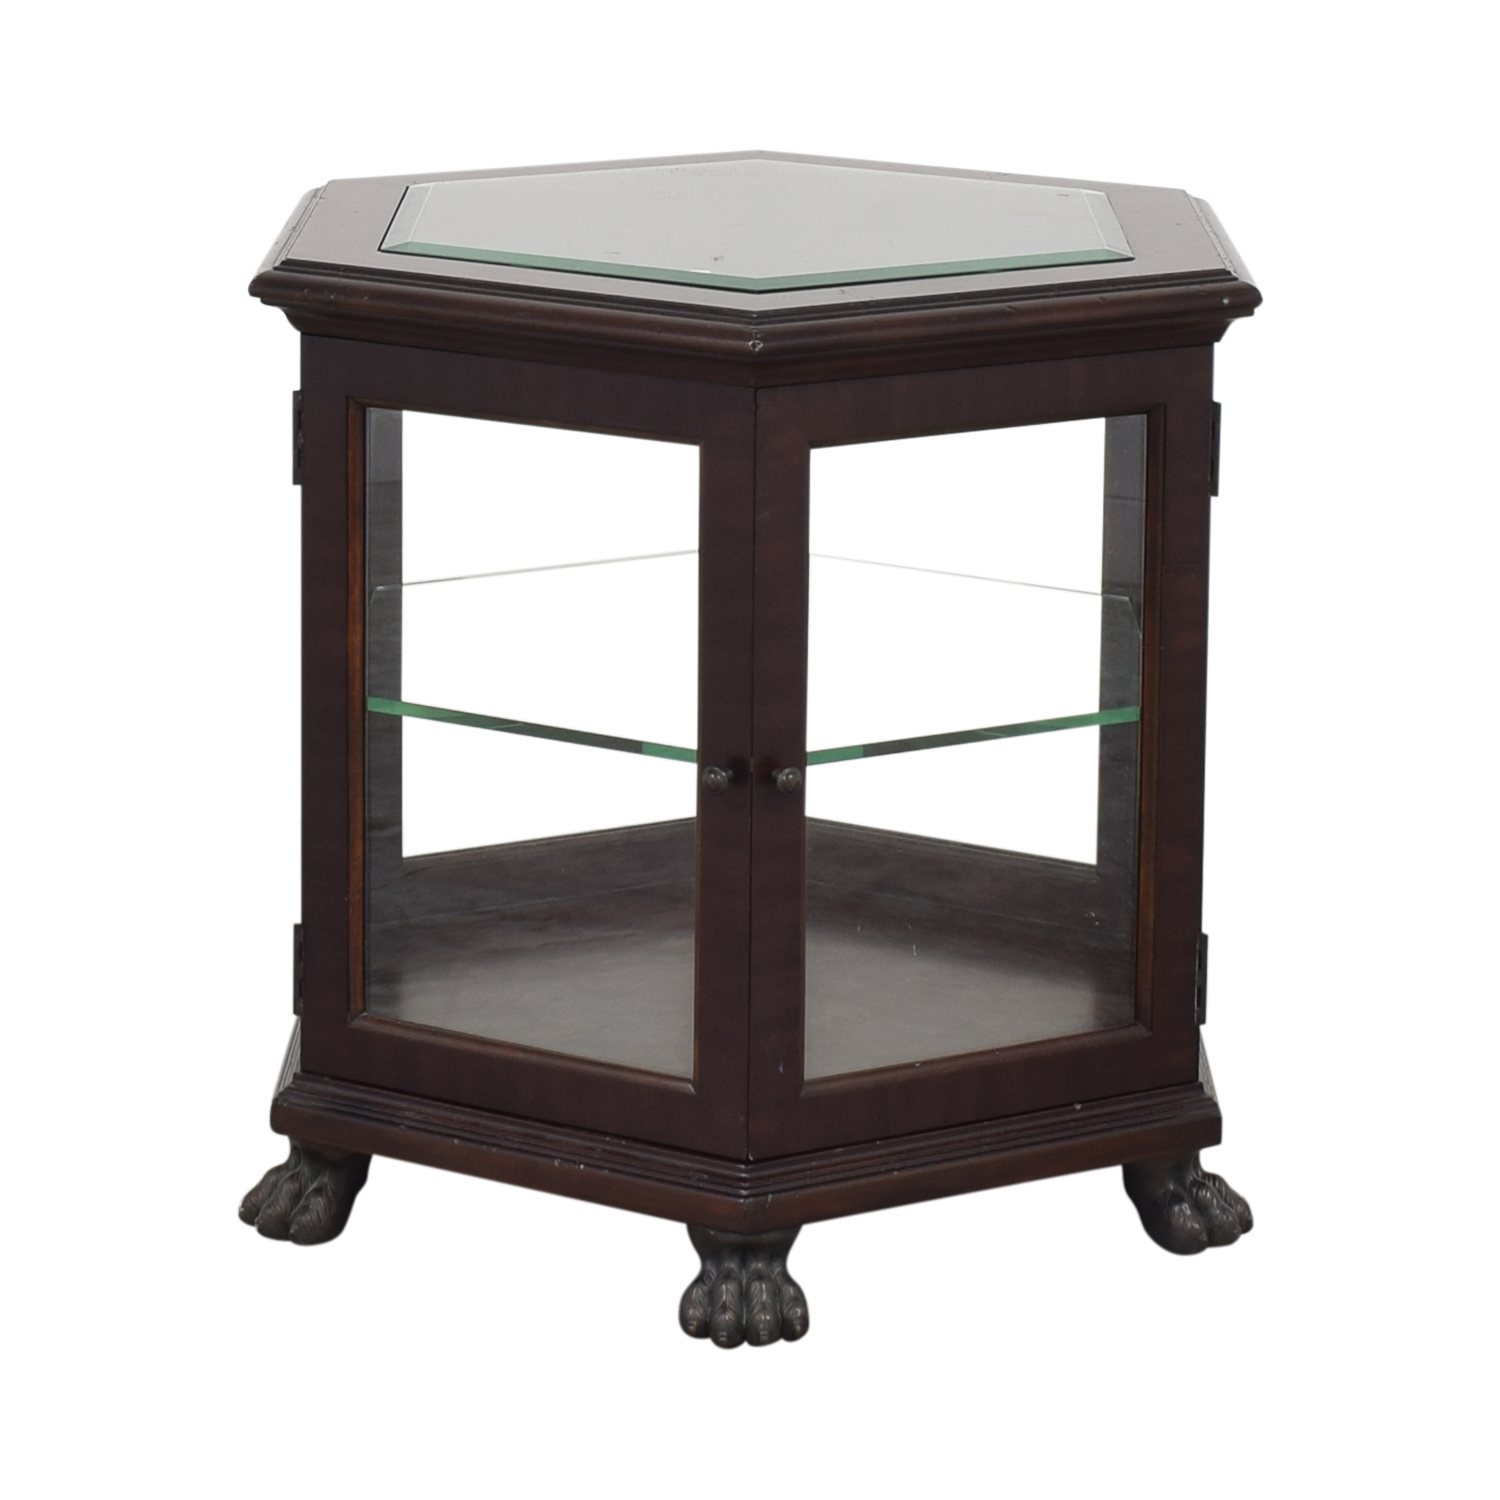 Thomasville Thomasville End Table with Storage used